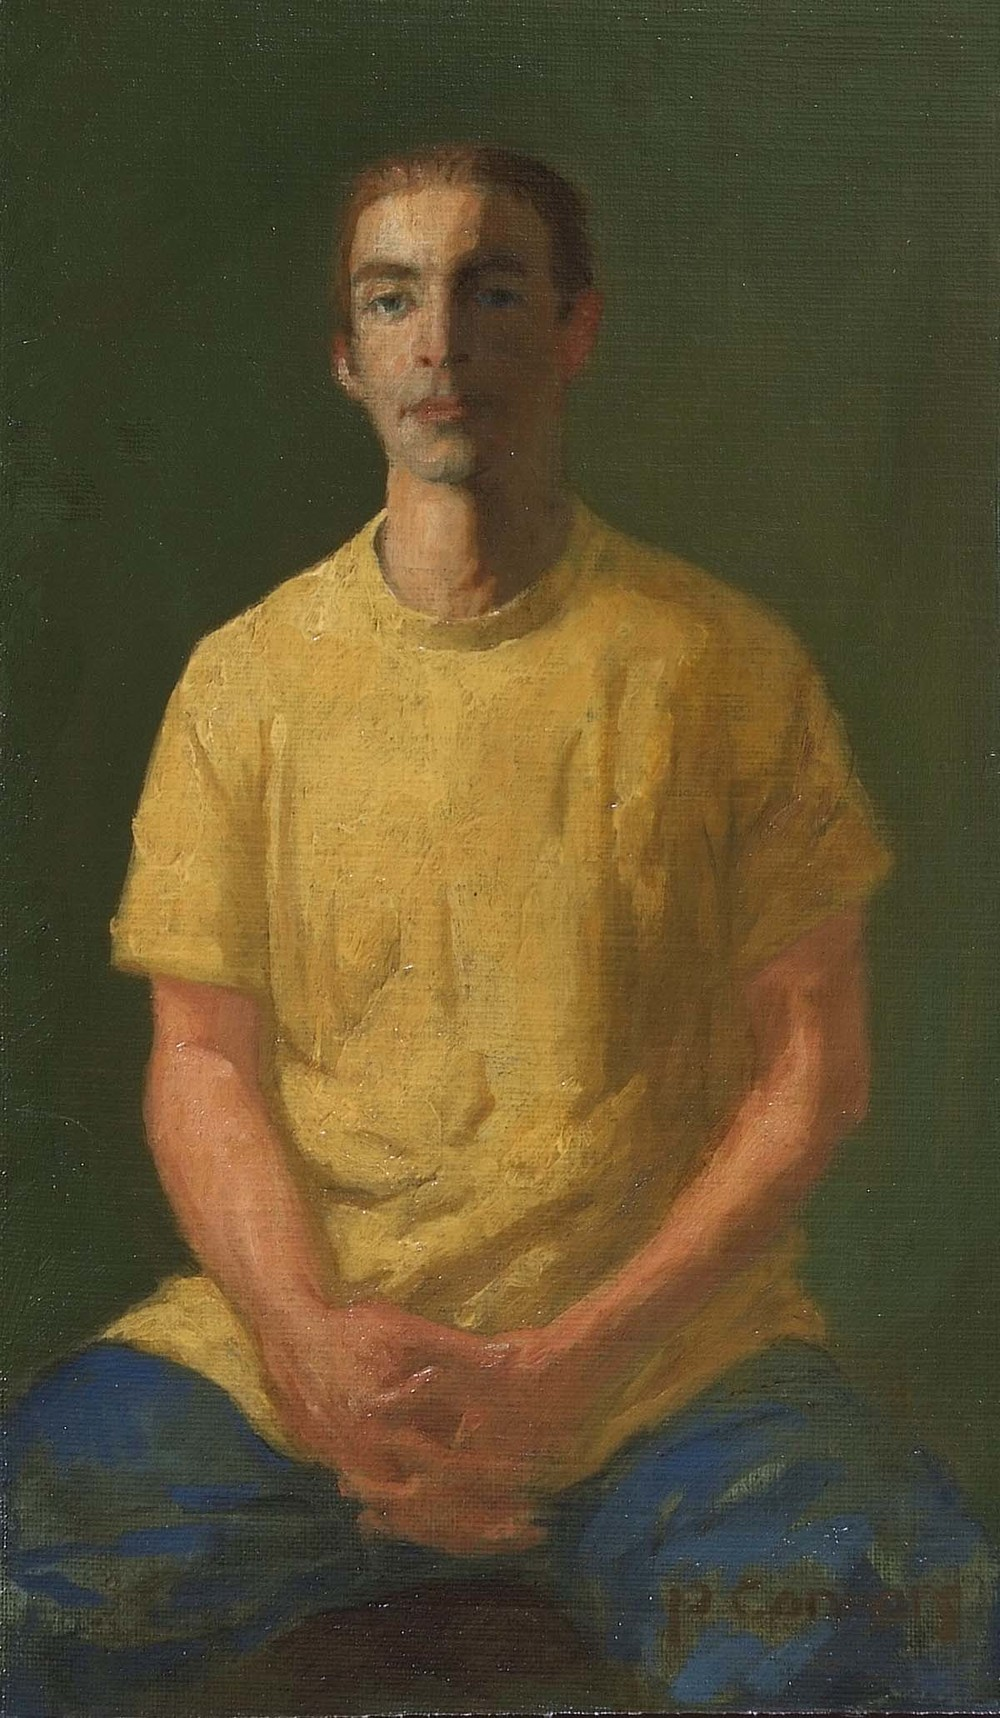 Portrait of B.S., 12 x 6 inches, oil on linen